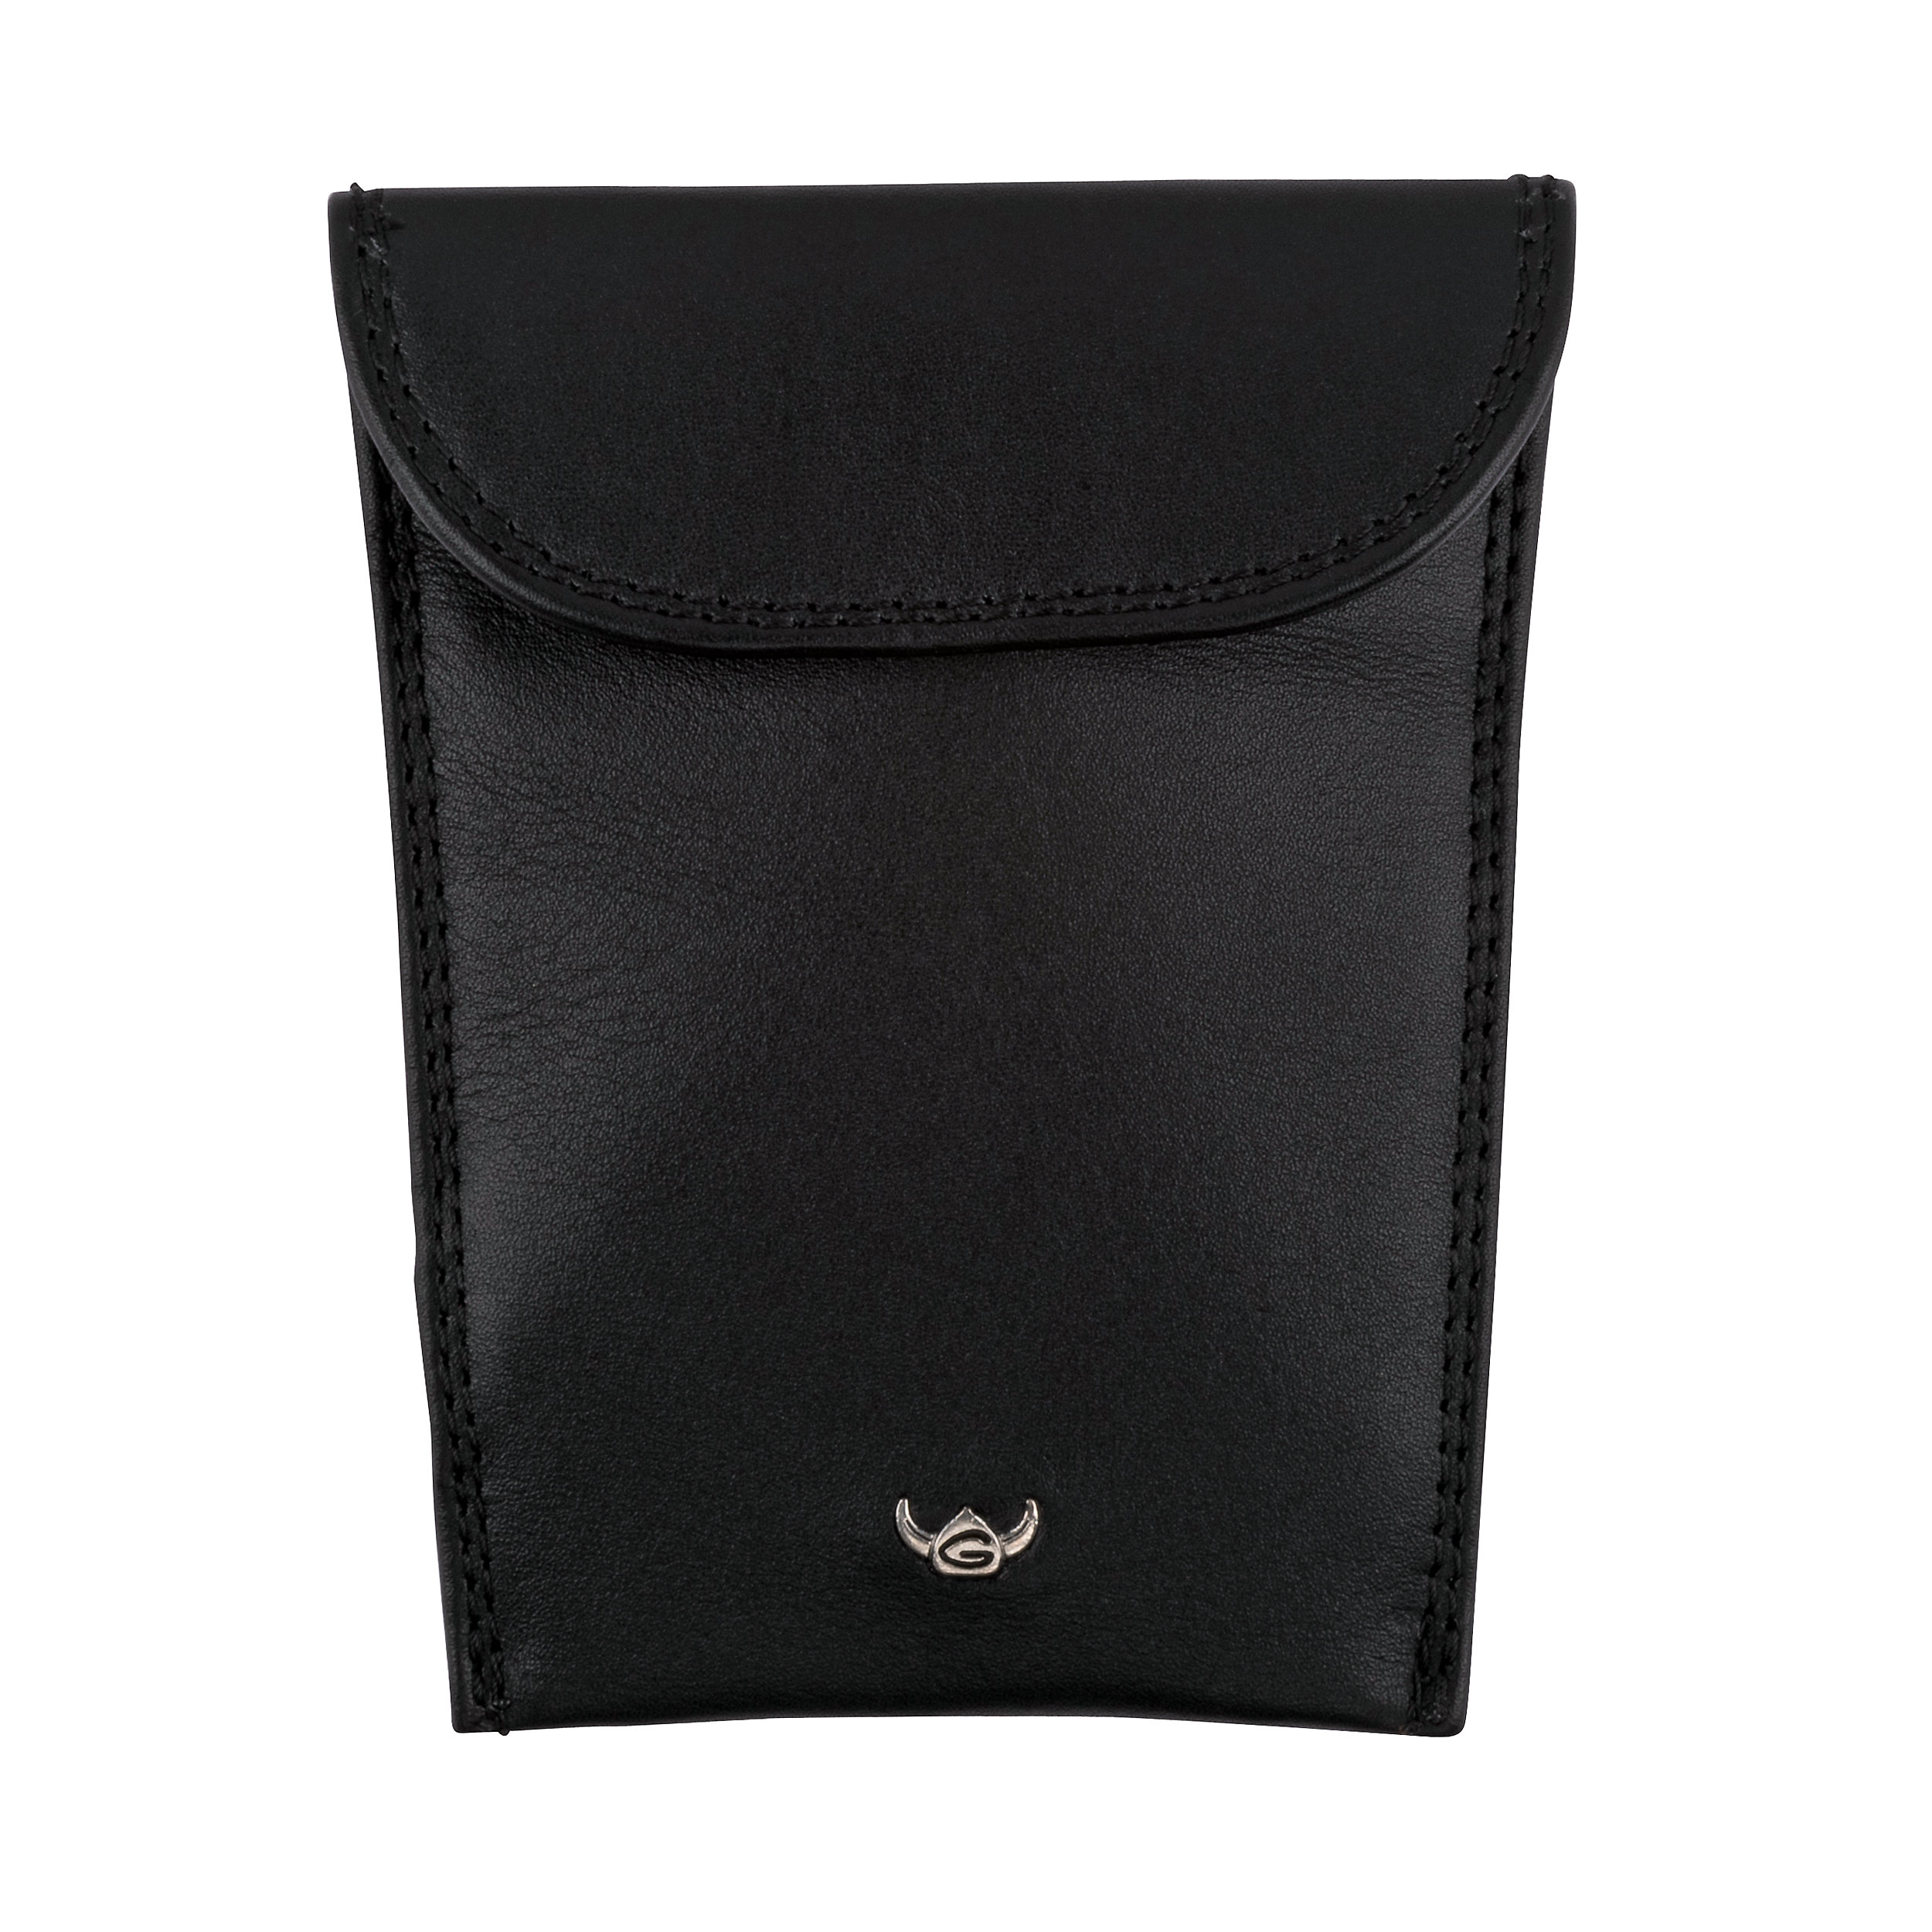 Key Case with push button RFID Colorado RFID Protect